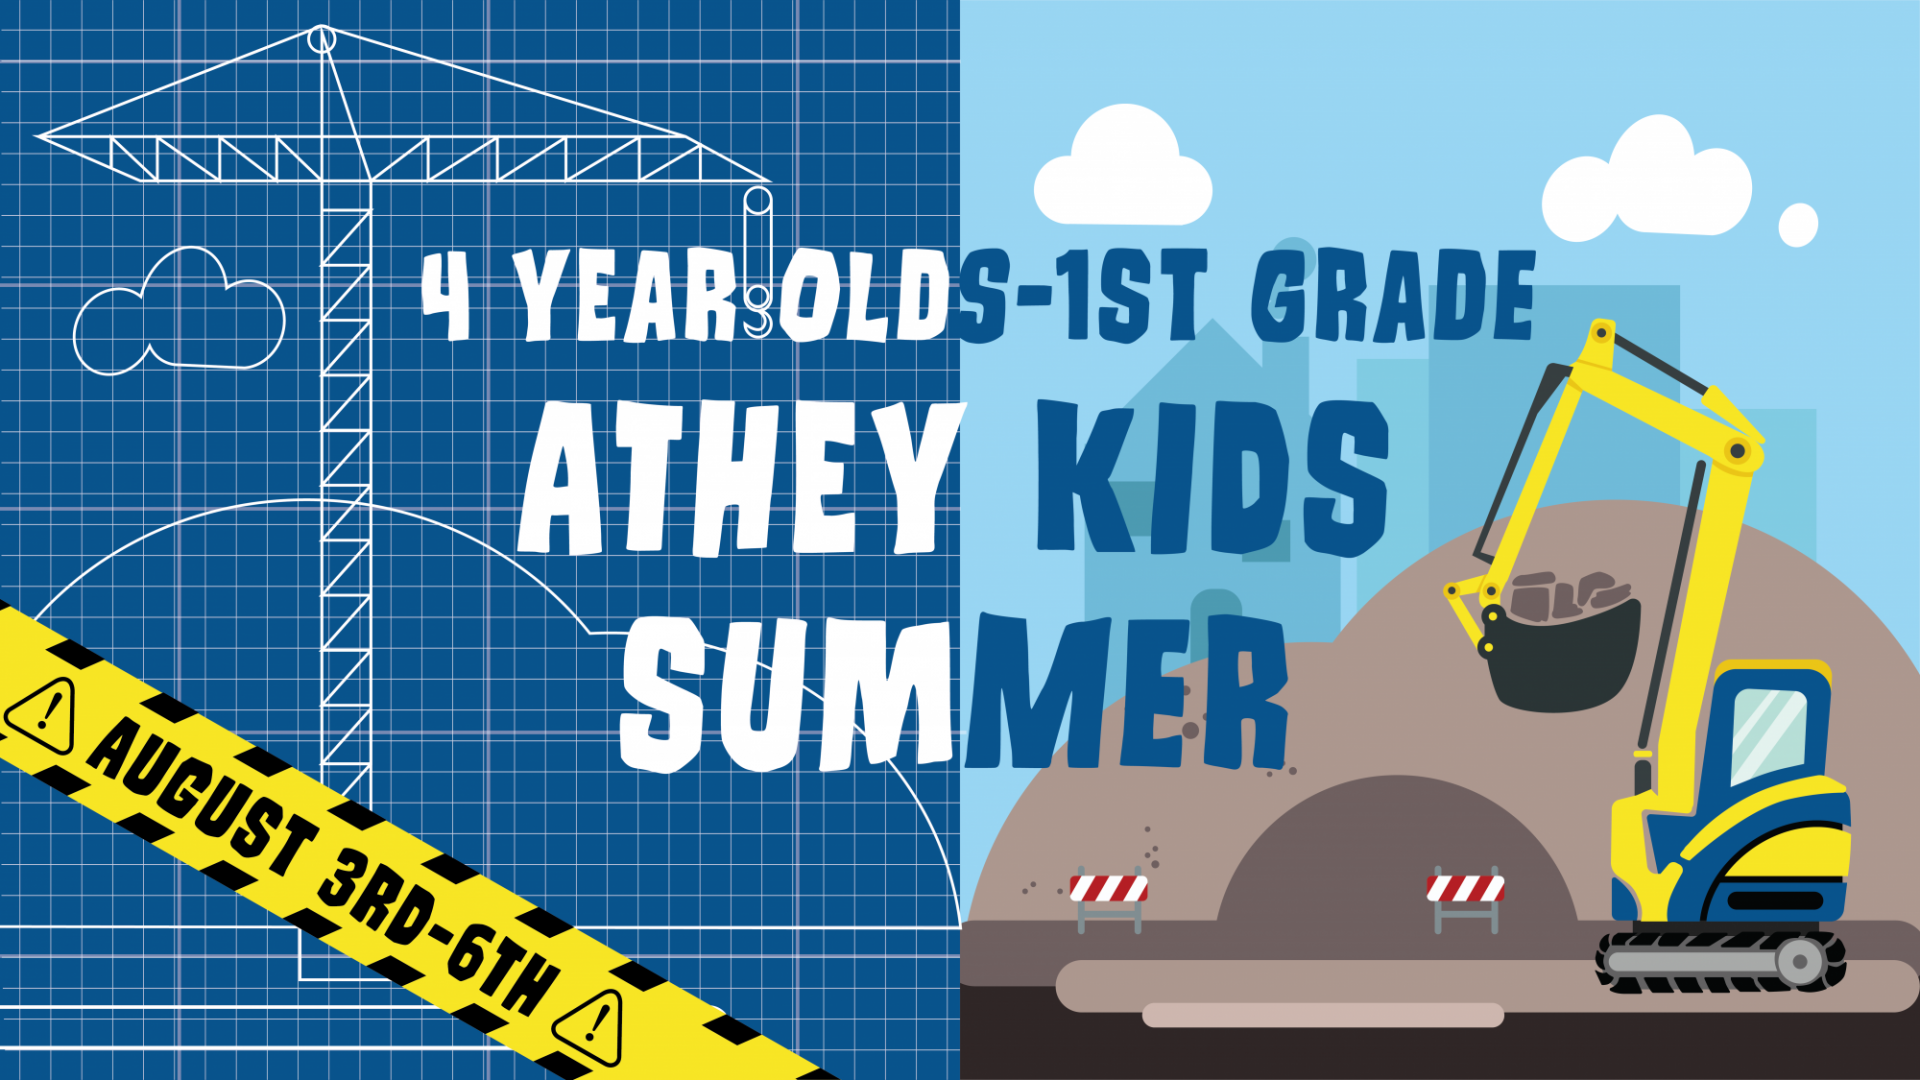 Poster for Athey Kids Summer 4 year olds-1st grade